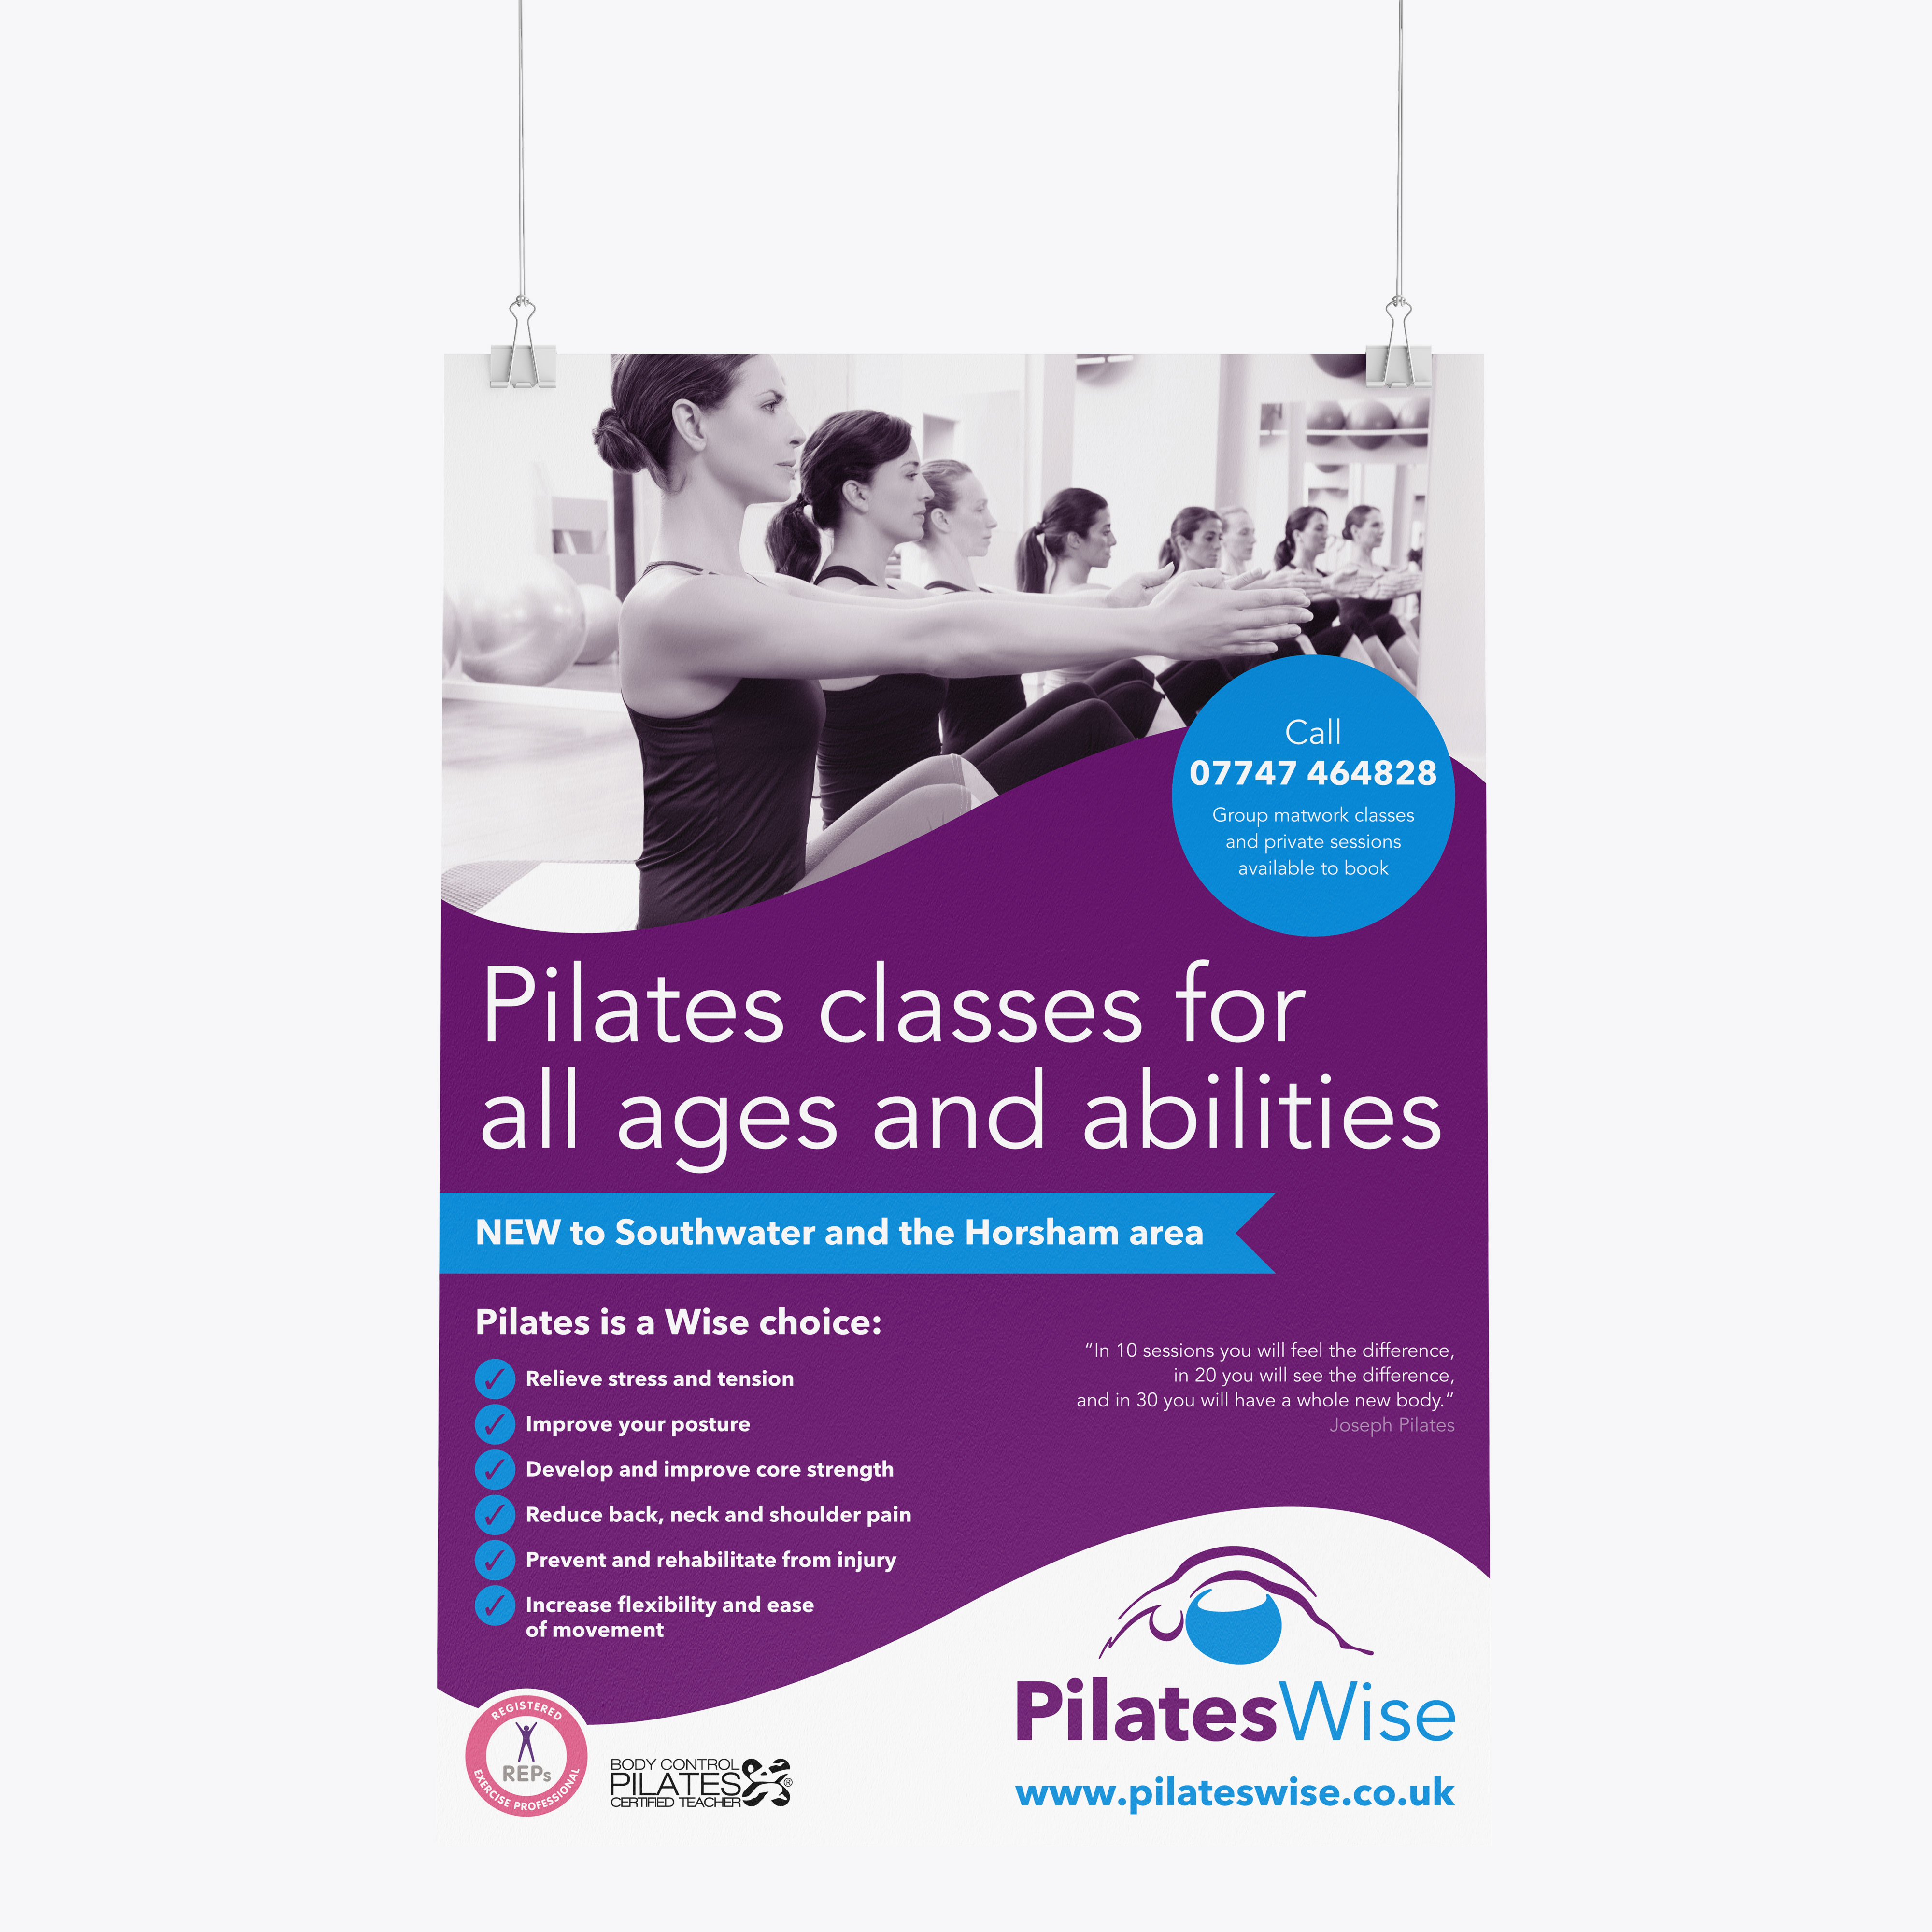 Pilateswise poster design